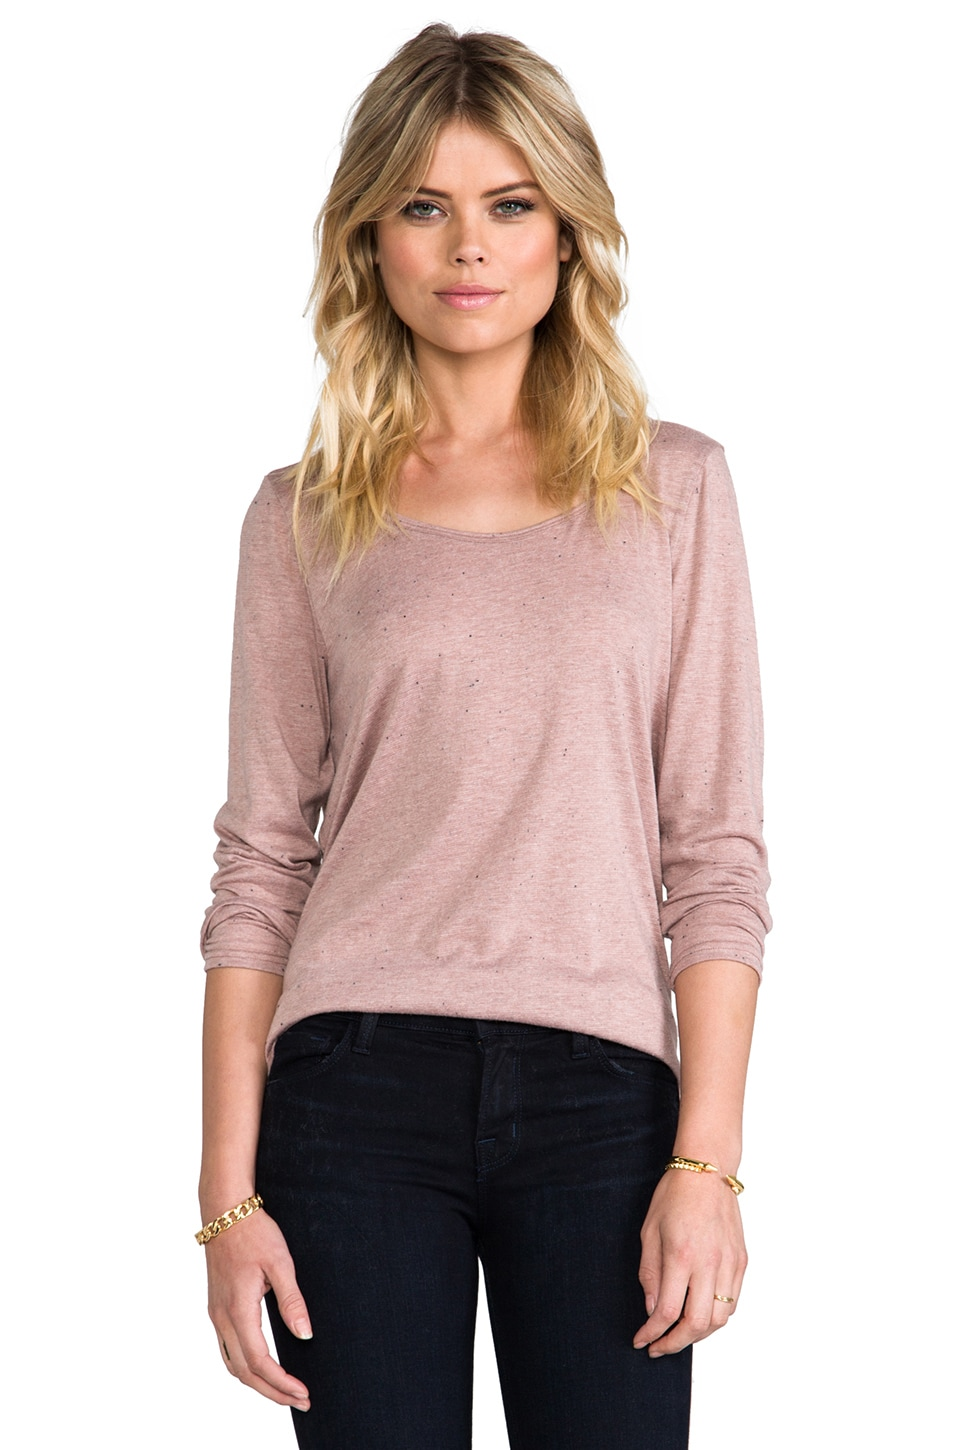 Funktional Twilight Top in Mauve